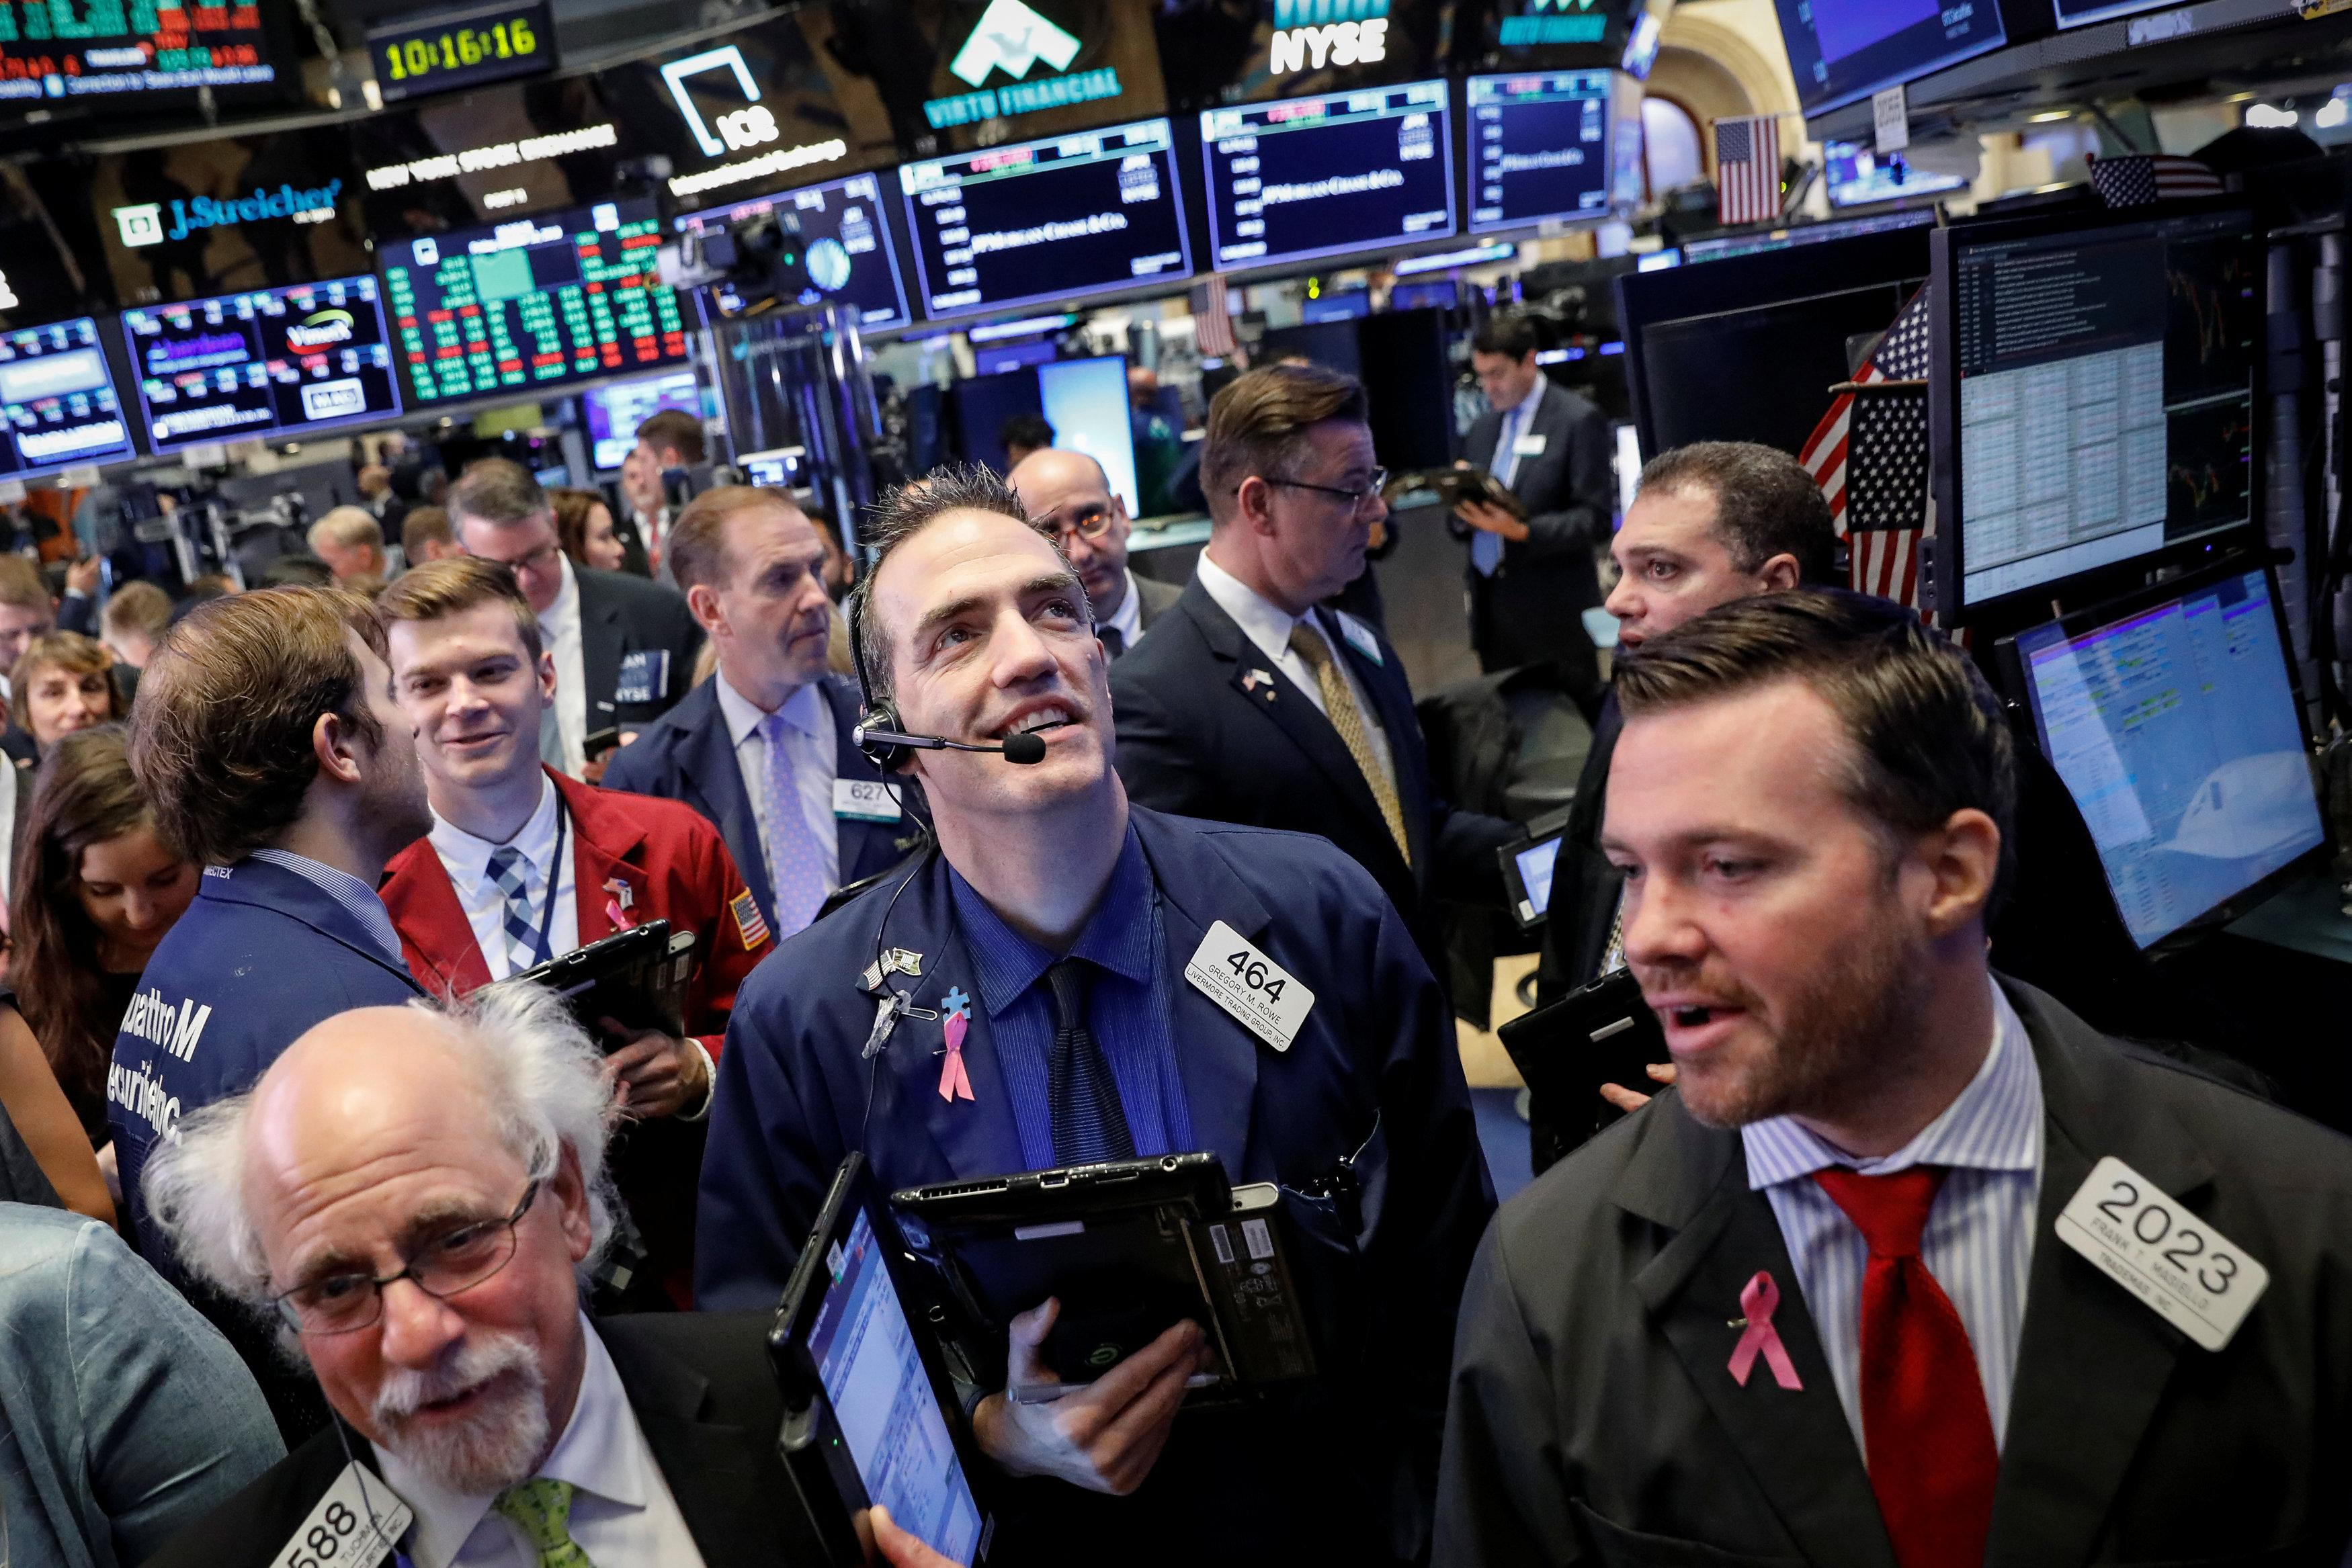 Stocks rise, Dow gains more than 200 points